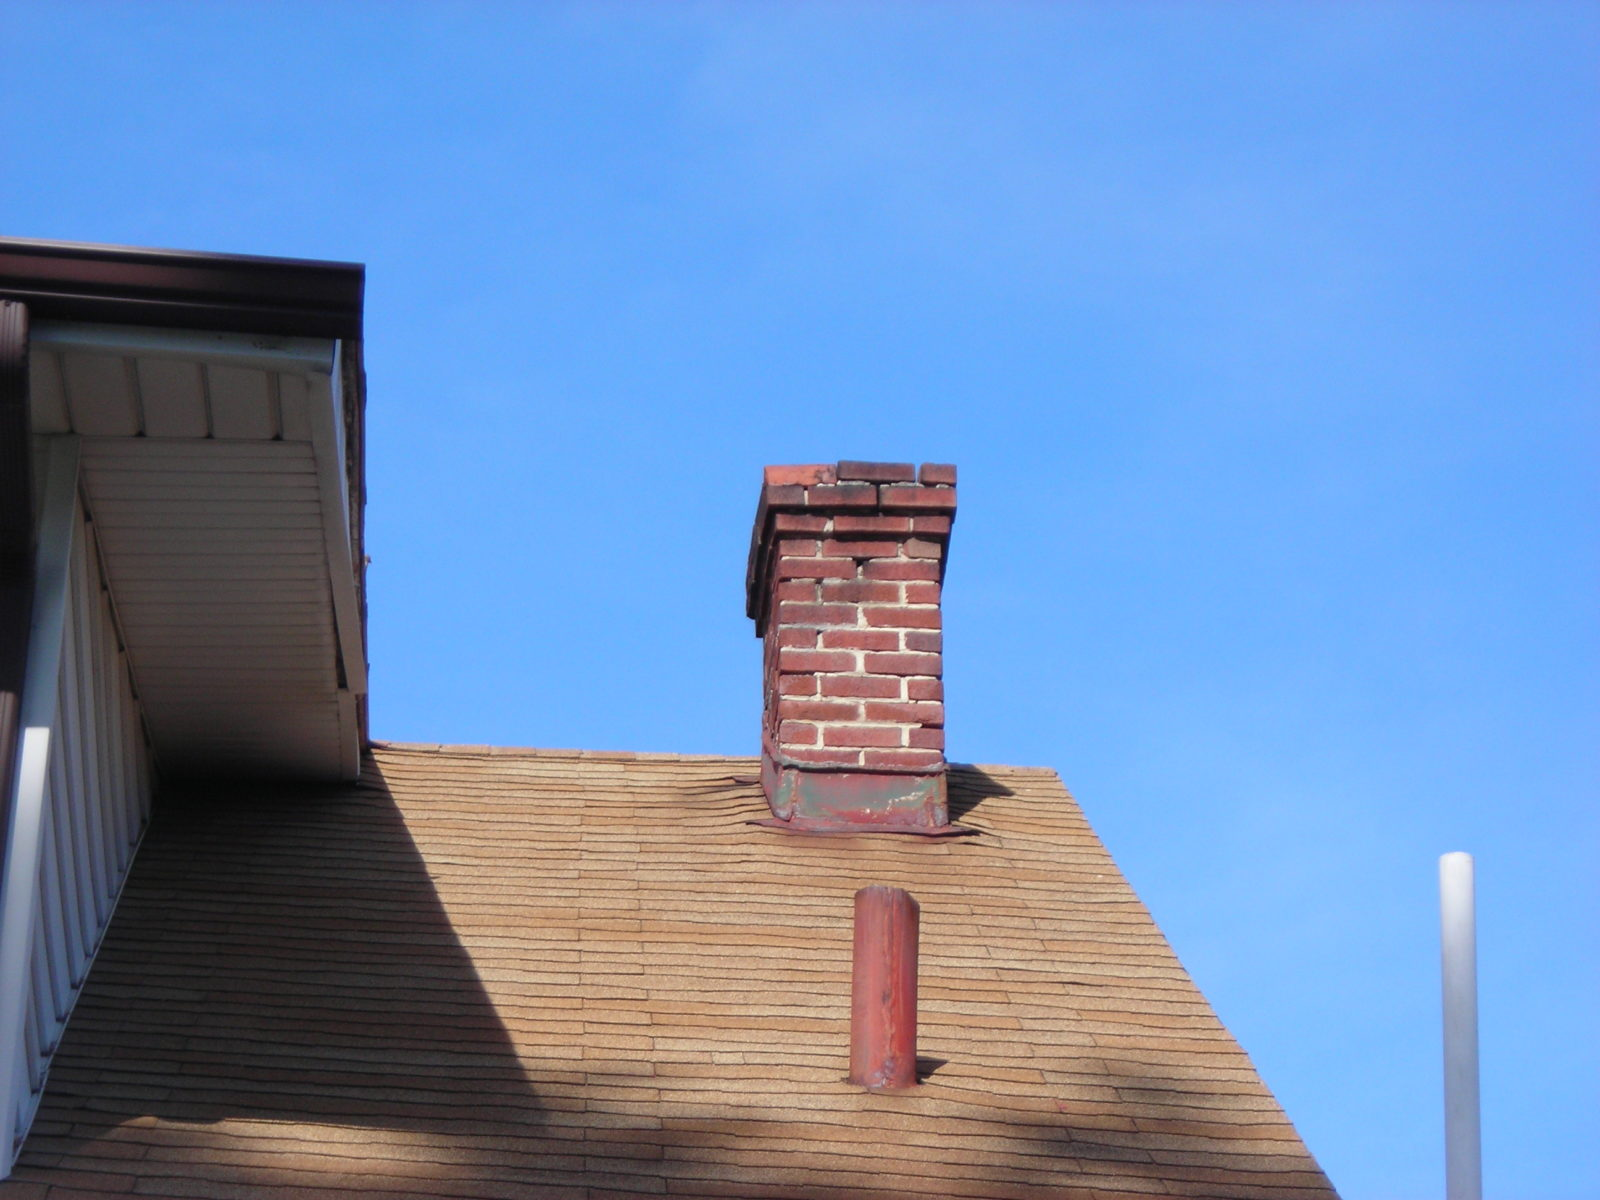 Masonry chimney in need of repair